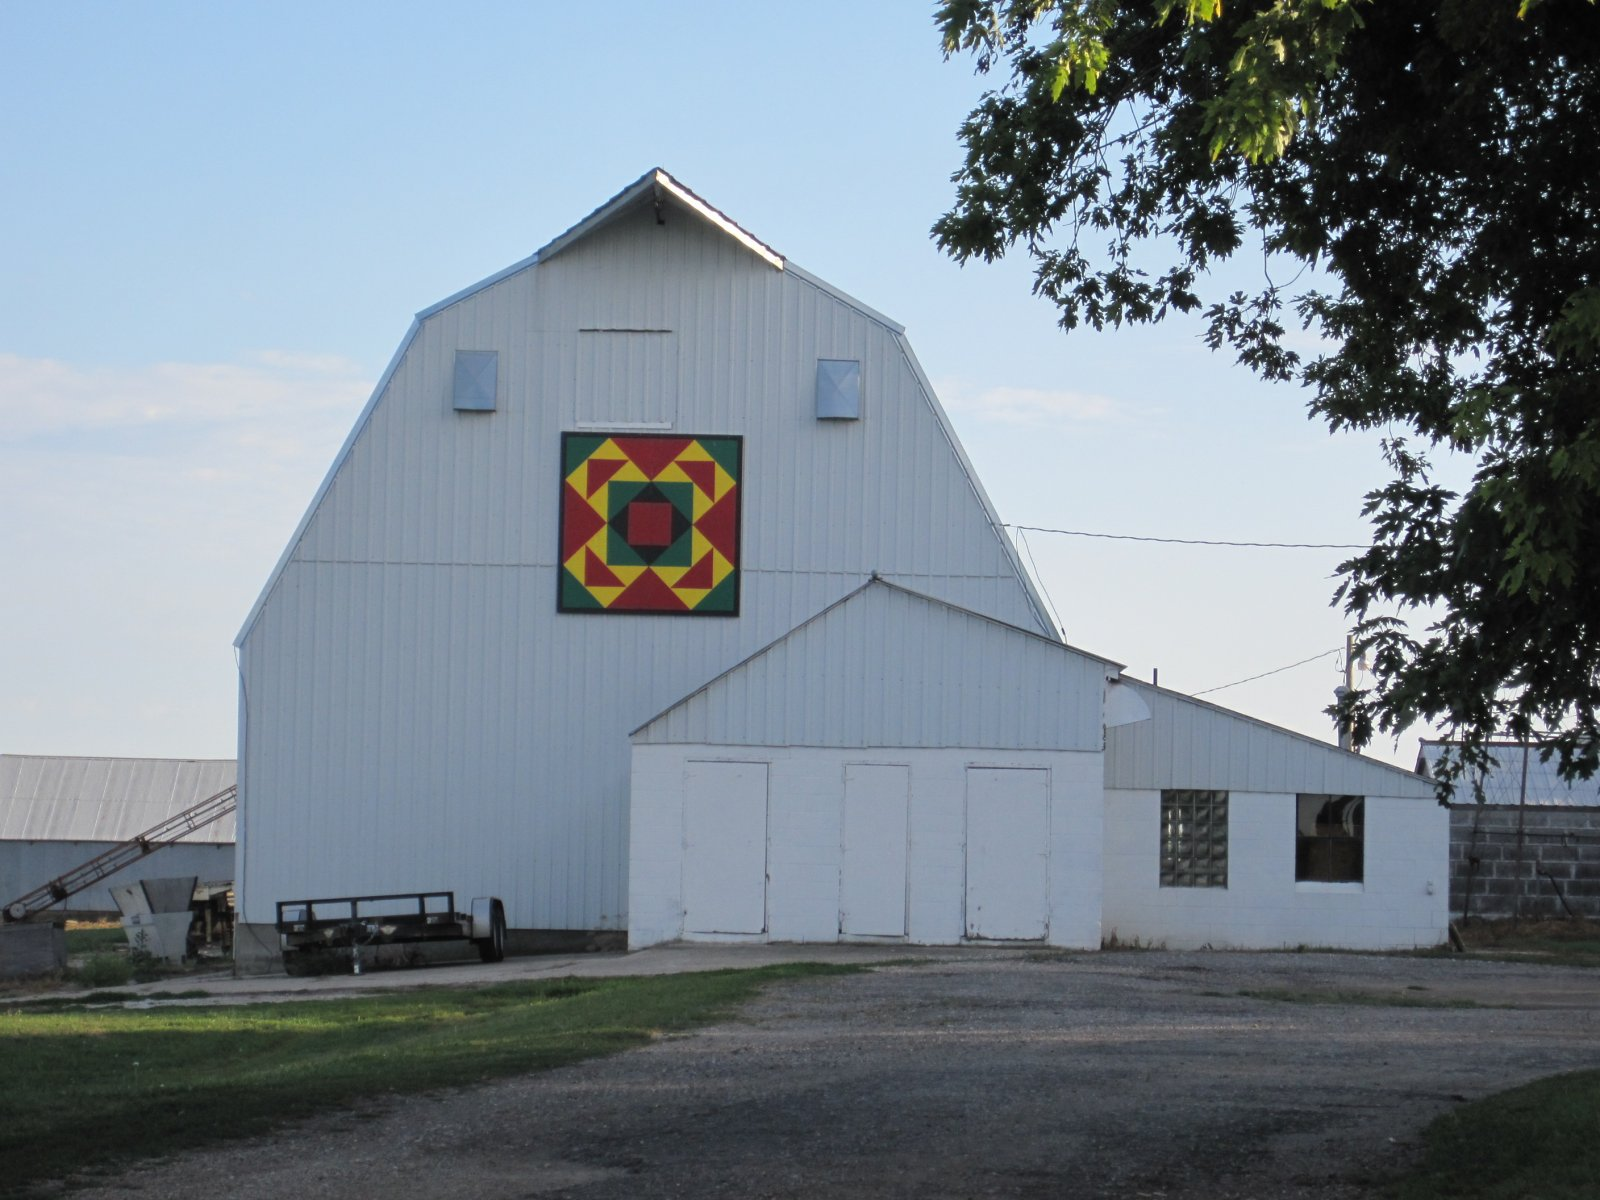 Click image for larger version  Name:Apring Beauty Barn Quilt.jpg Views:81 Size:257.9 KB ID:139039